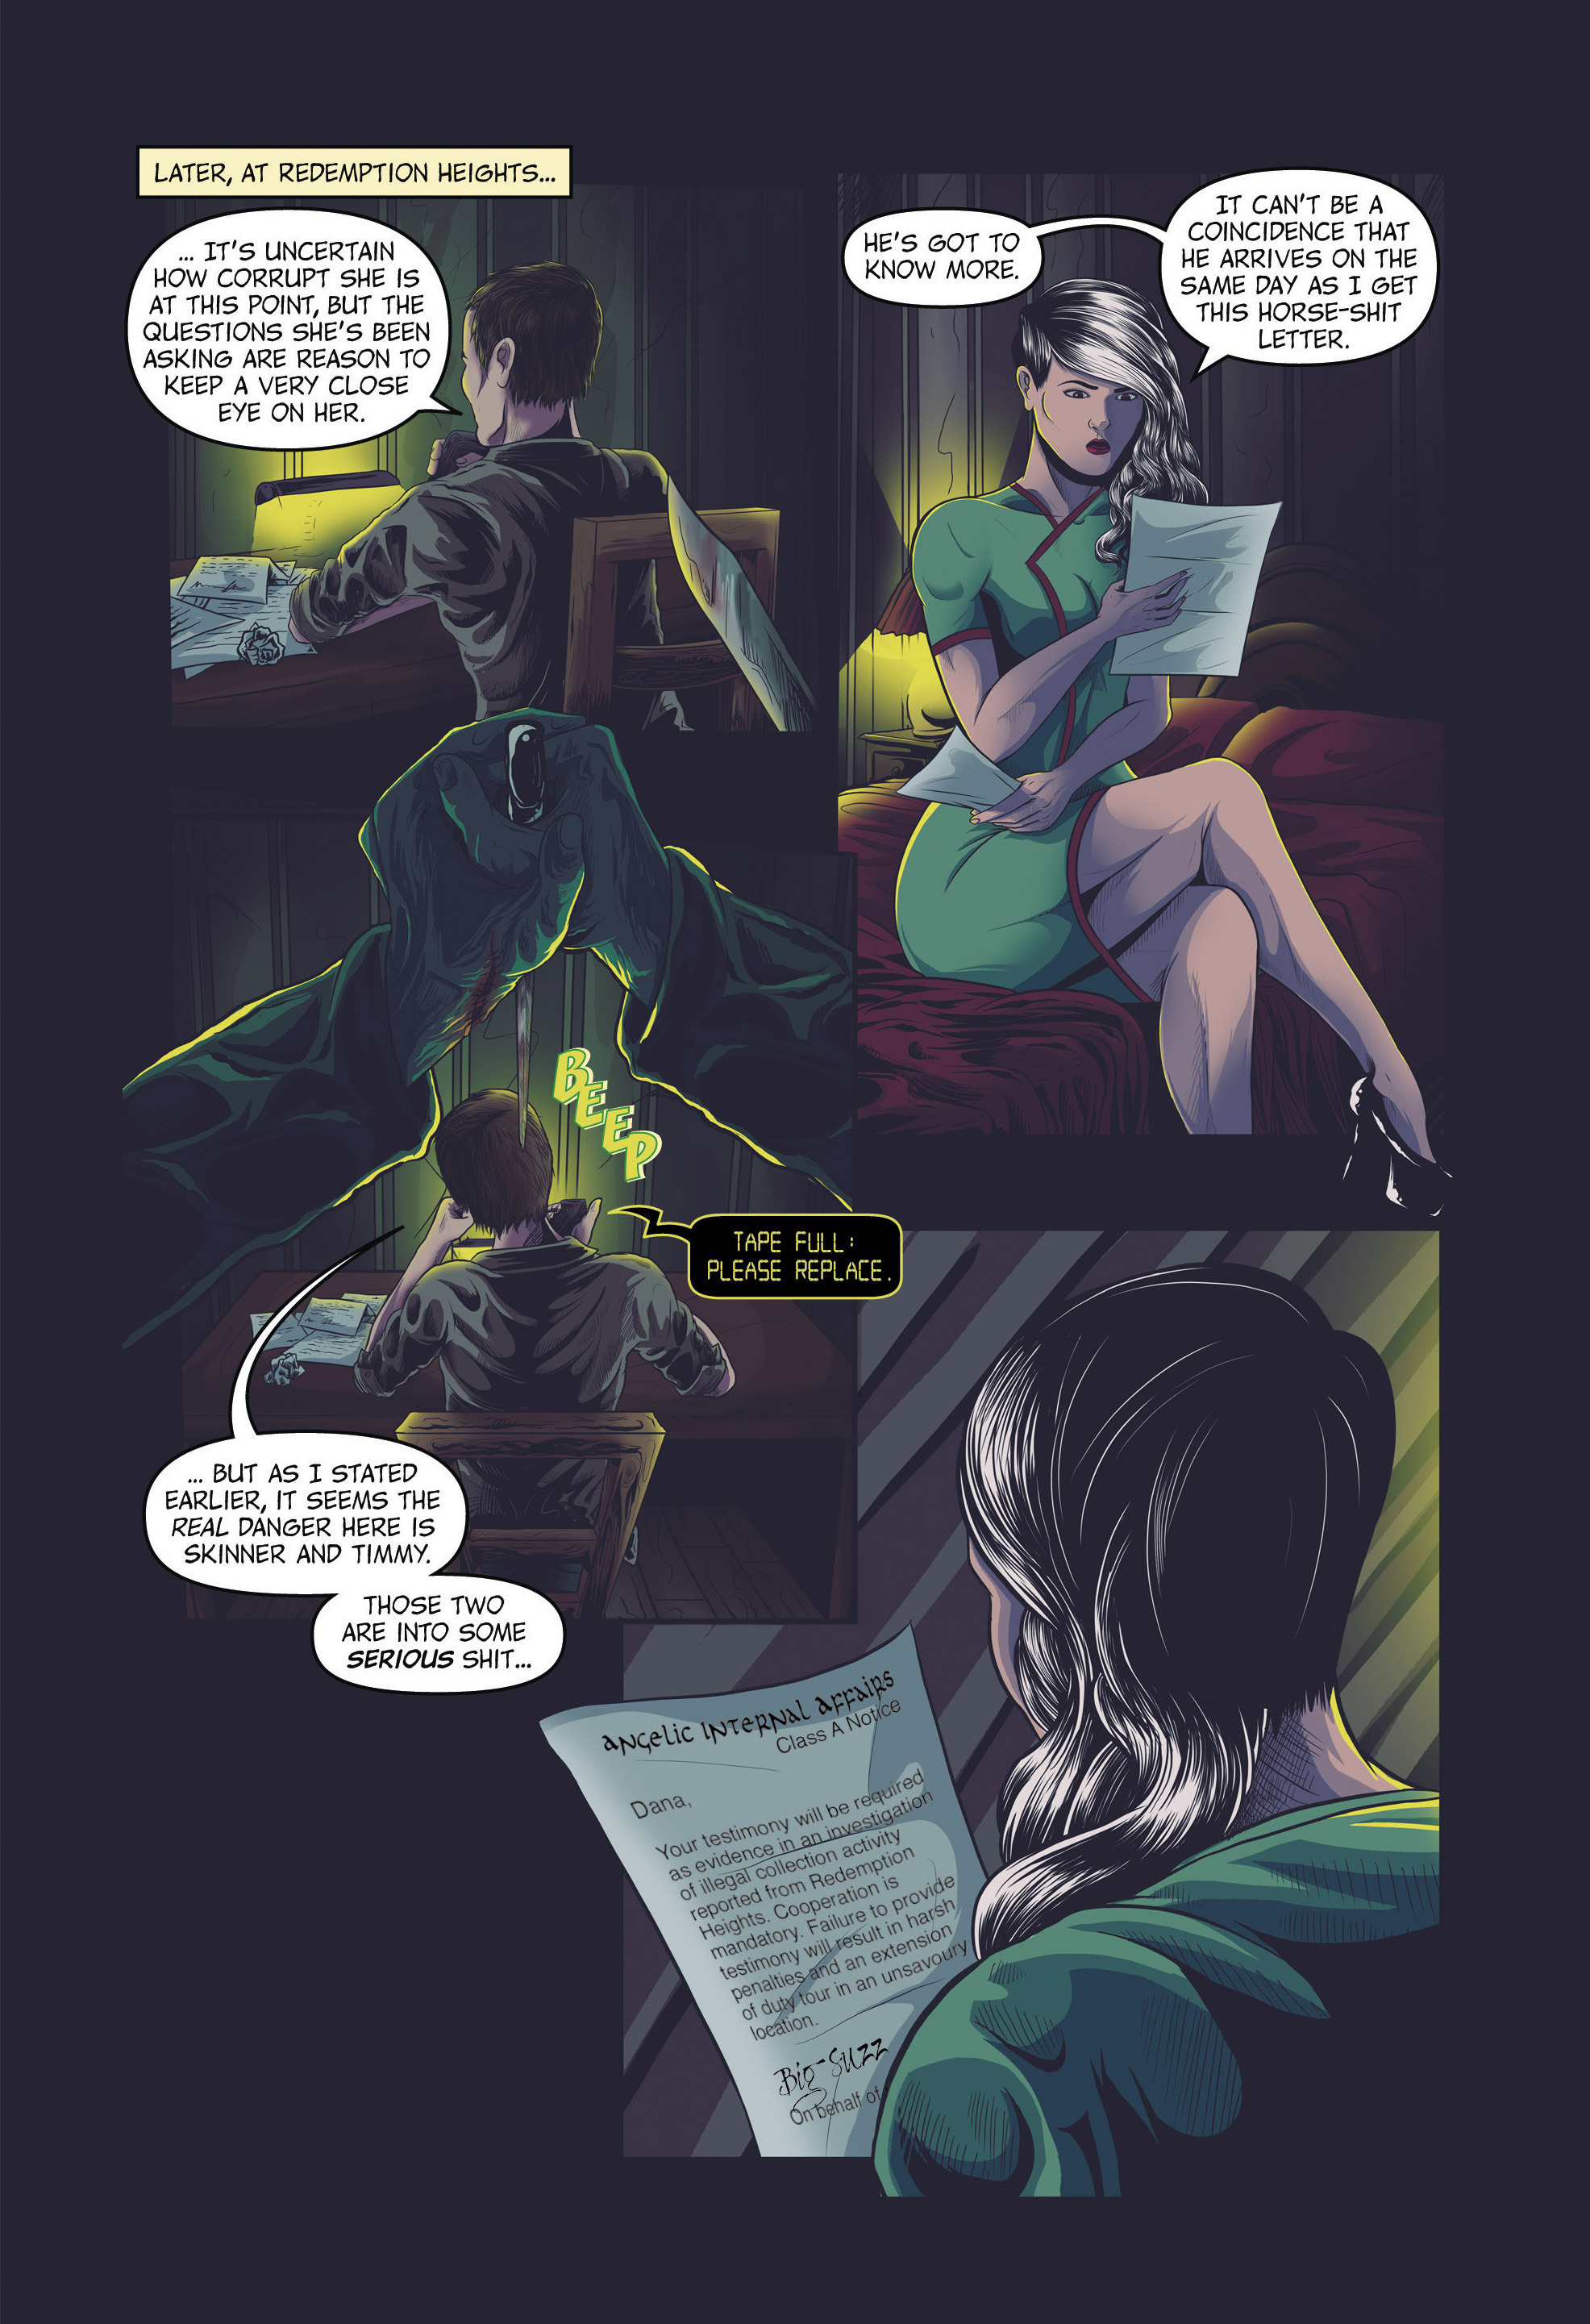 Read online Redemption Heights comic -  Issue # Full - 58